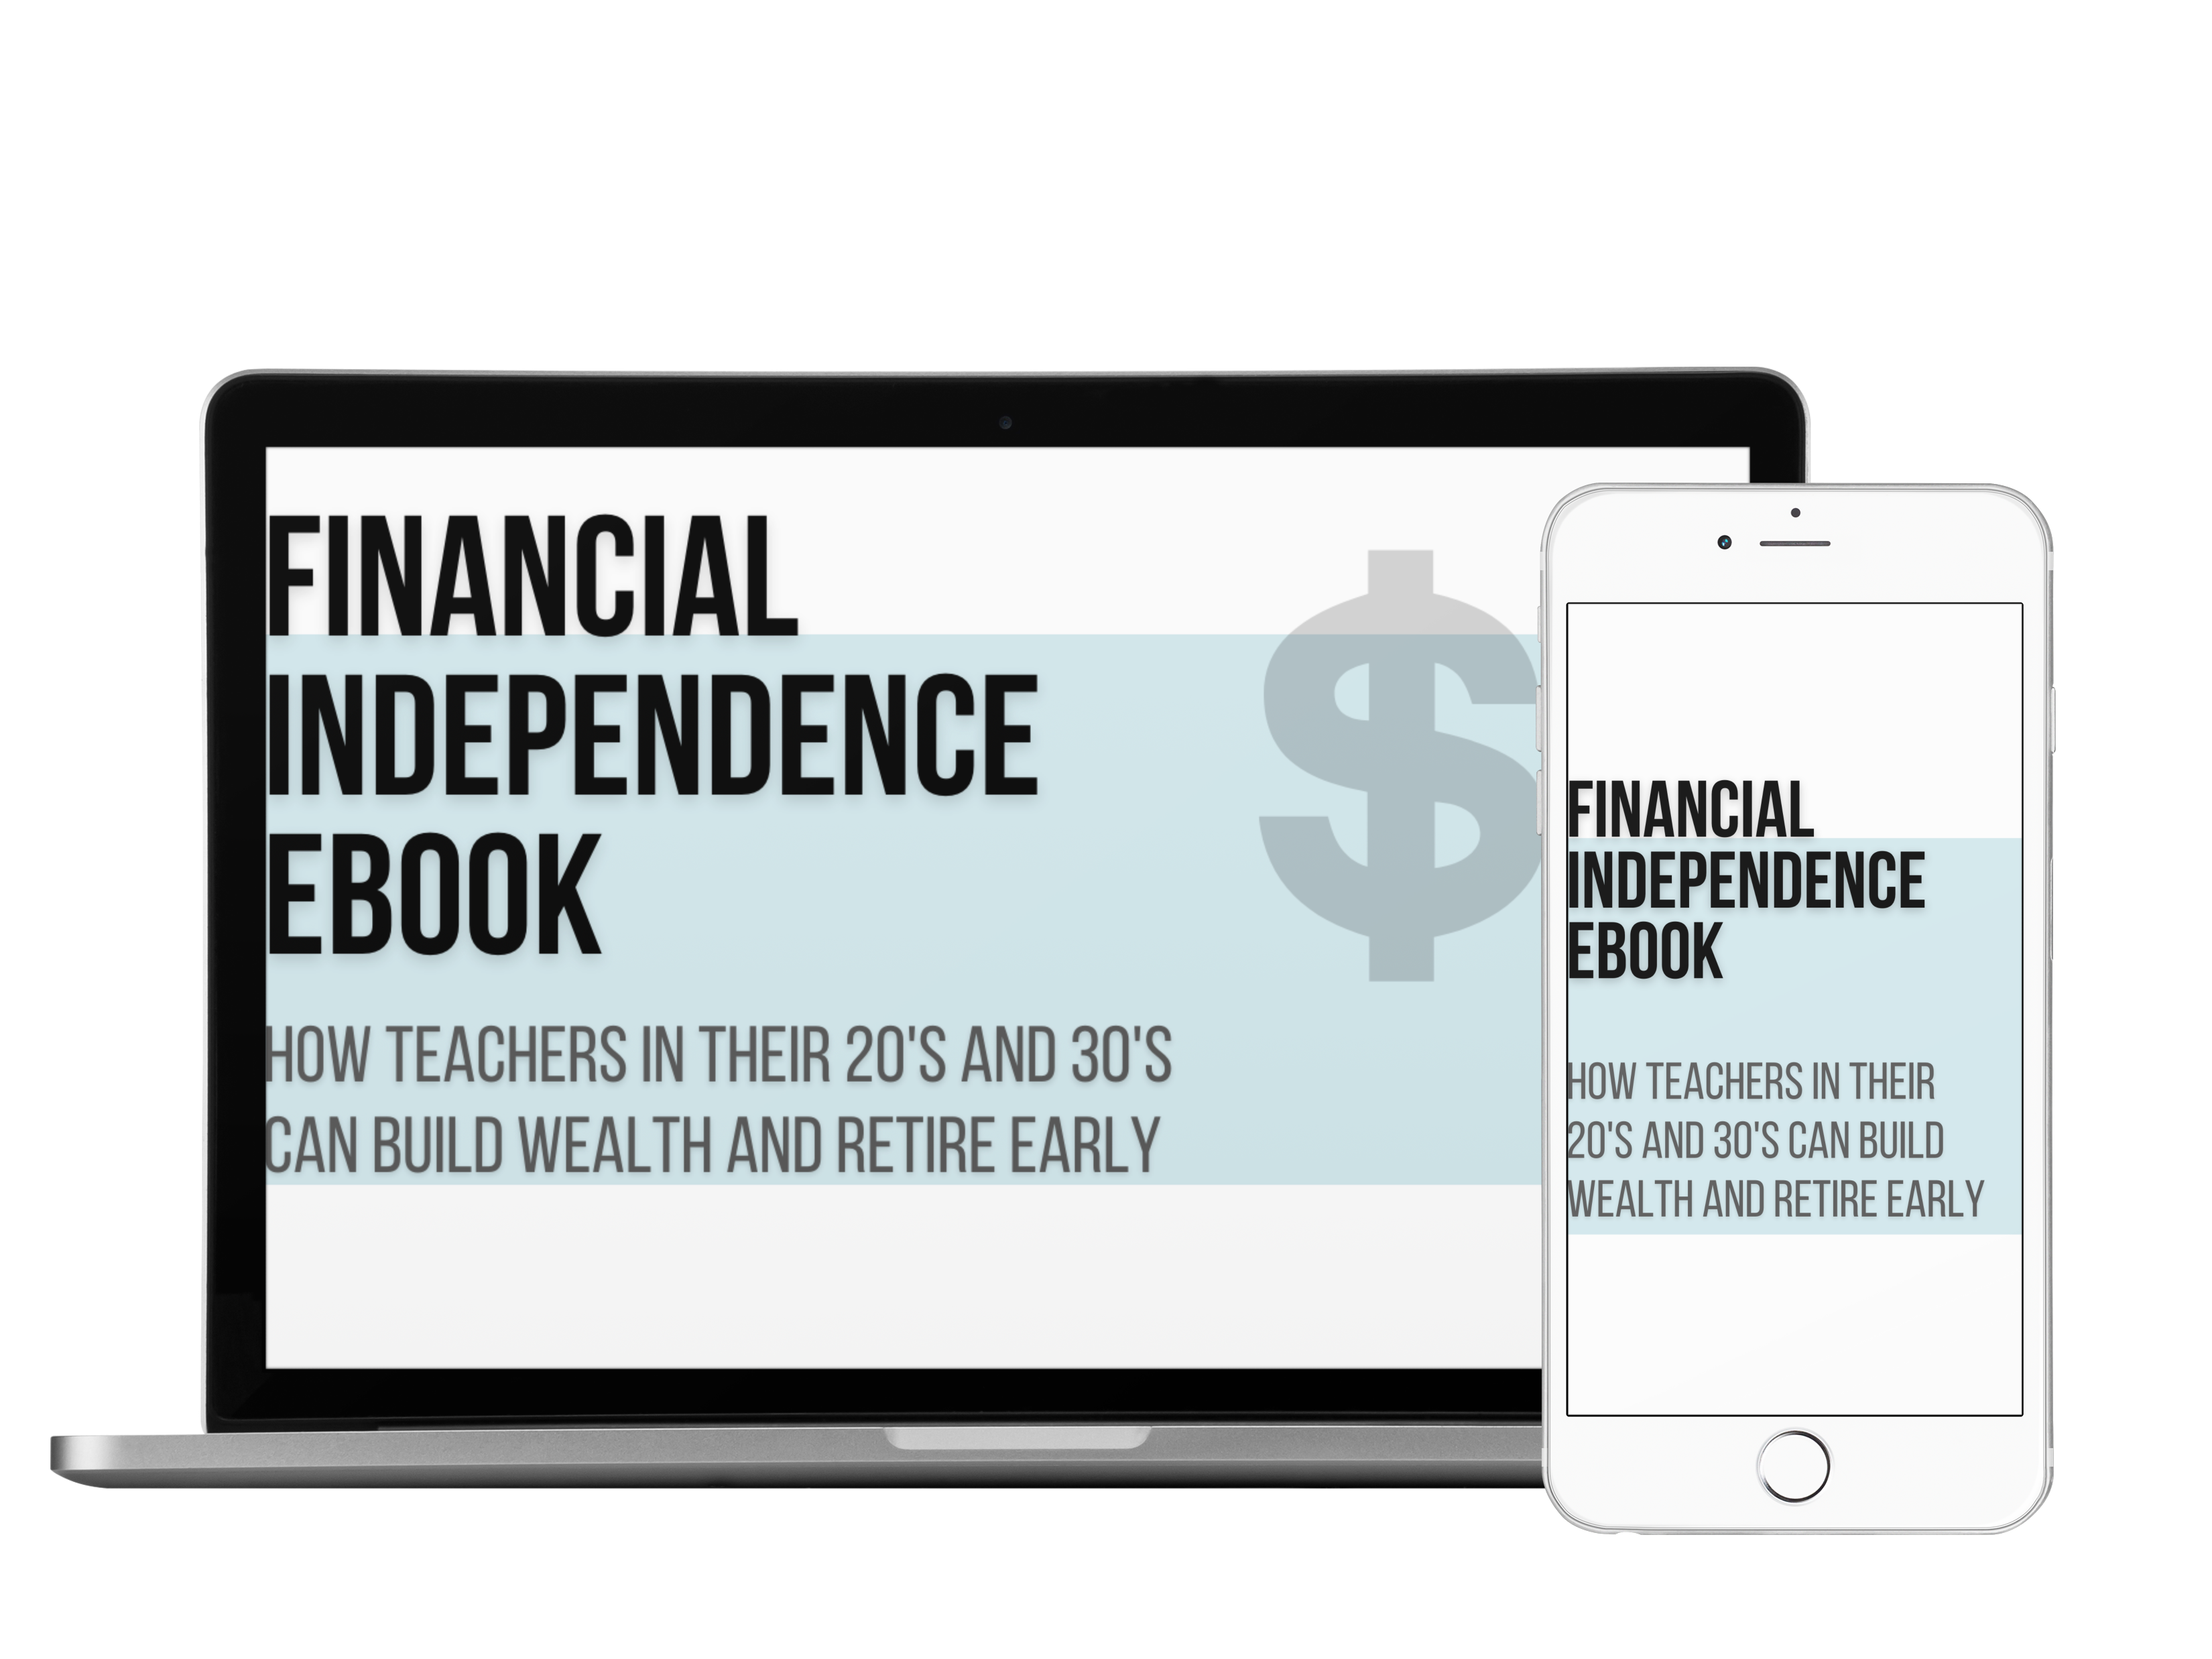 Financial Independence EBook: How Millennial Teachers Can Build Wealth and Retire Early